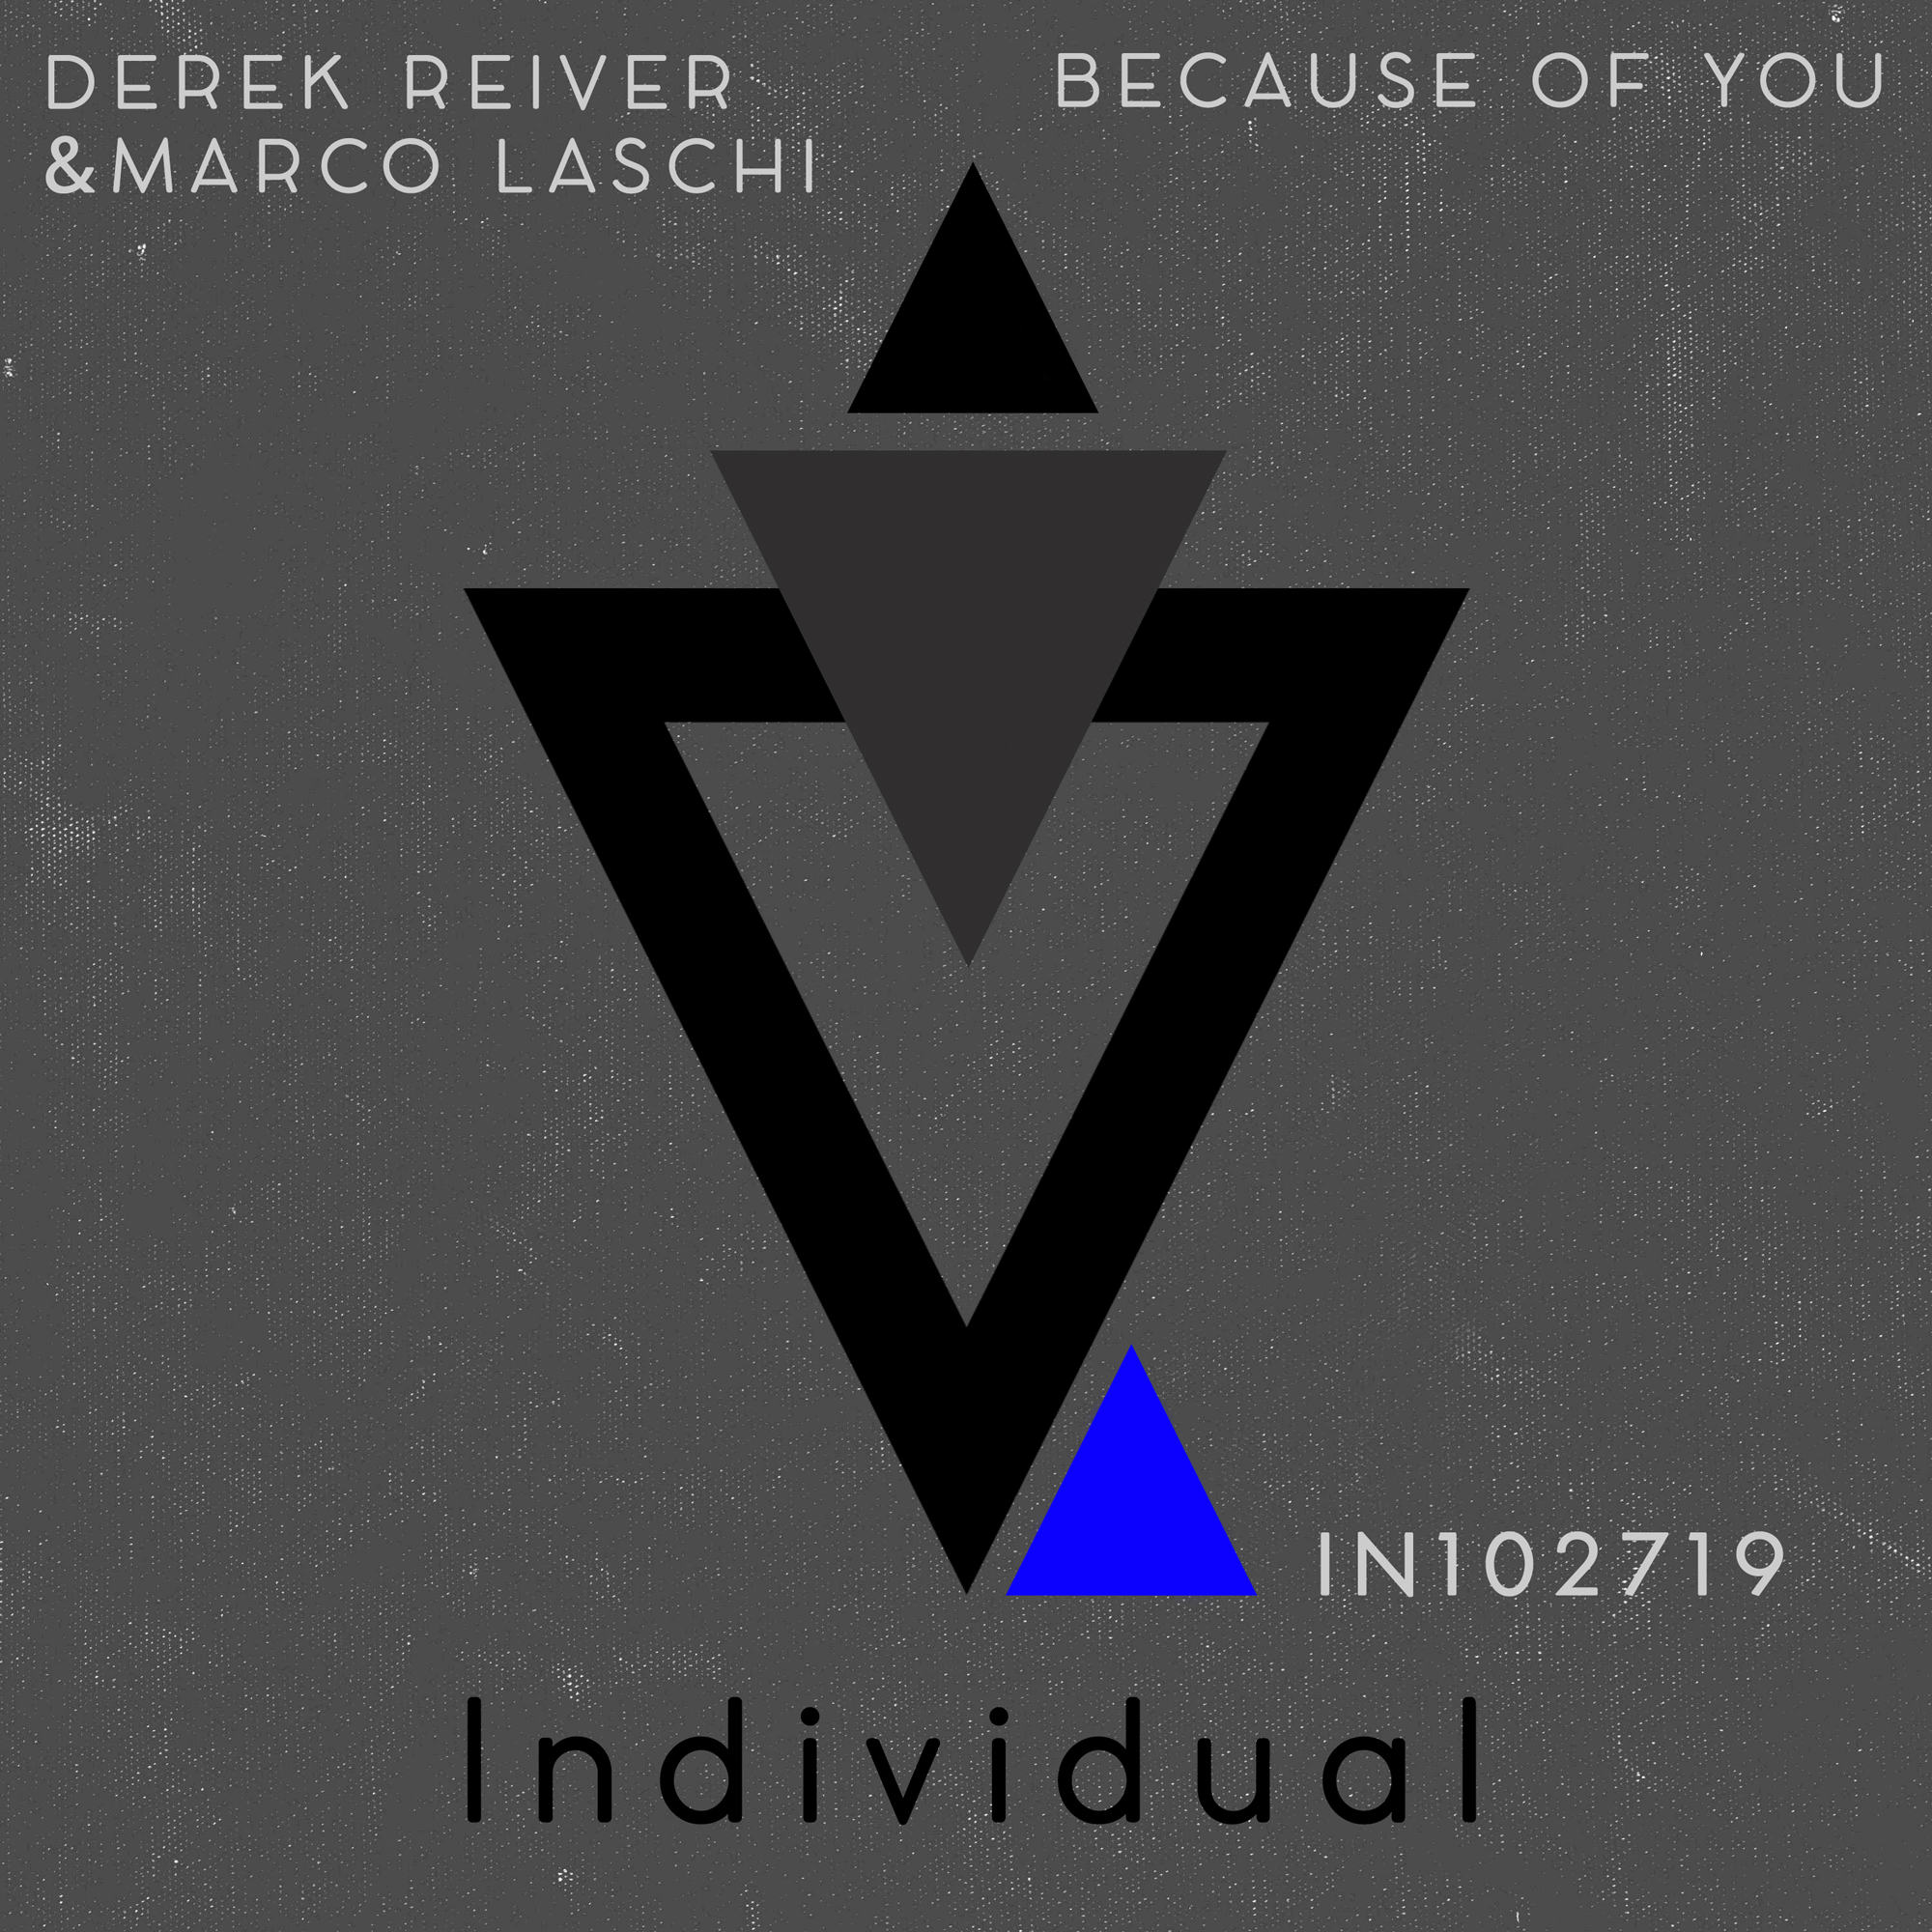 Derek Reiver & Marco Laschi - Because Of You